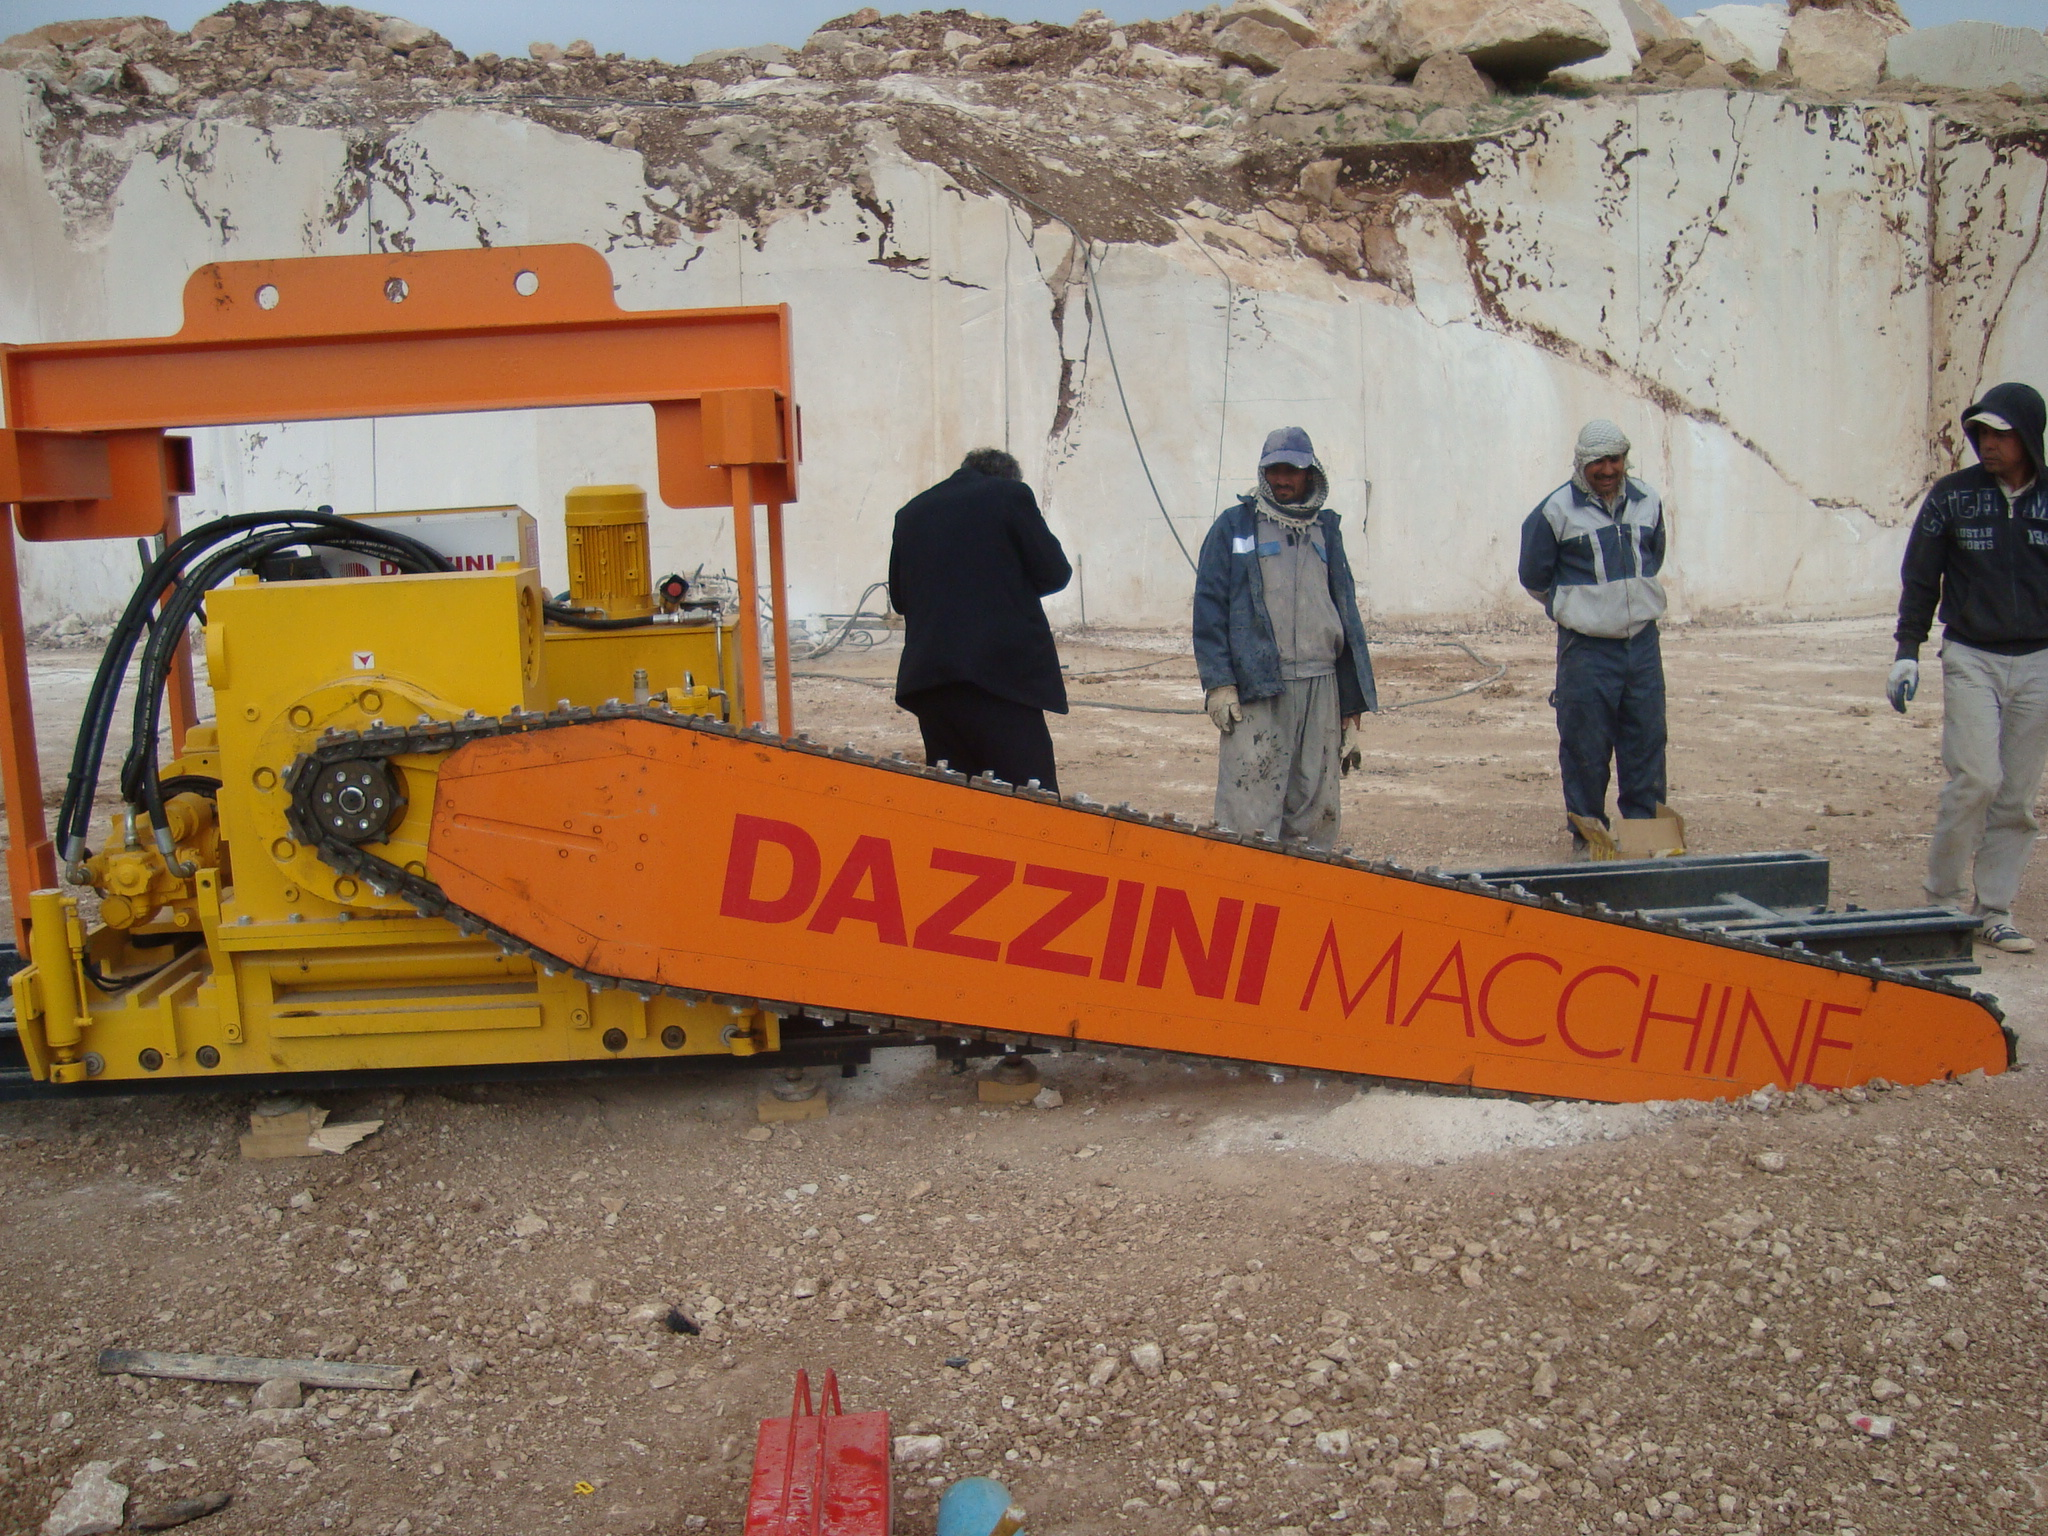 Dazzini Chain Saw. www.patsharkeyengineering.co.uk